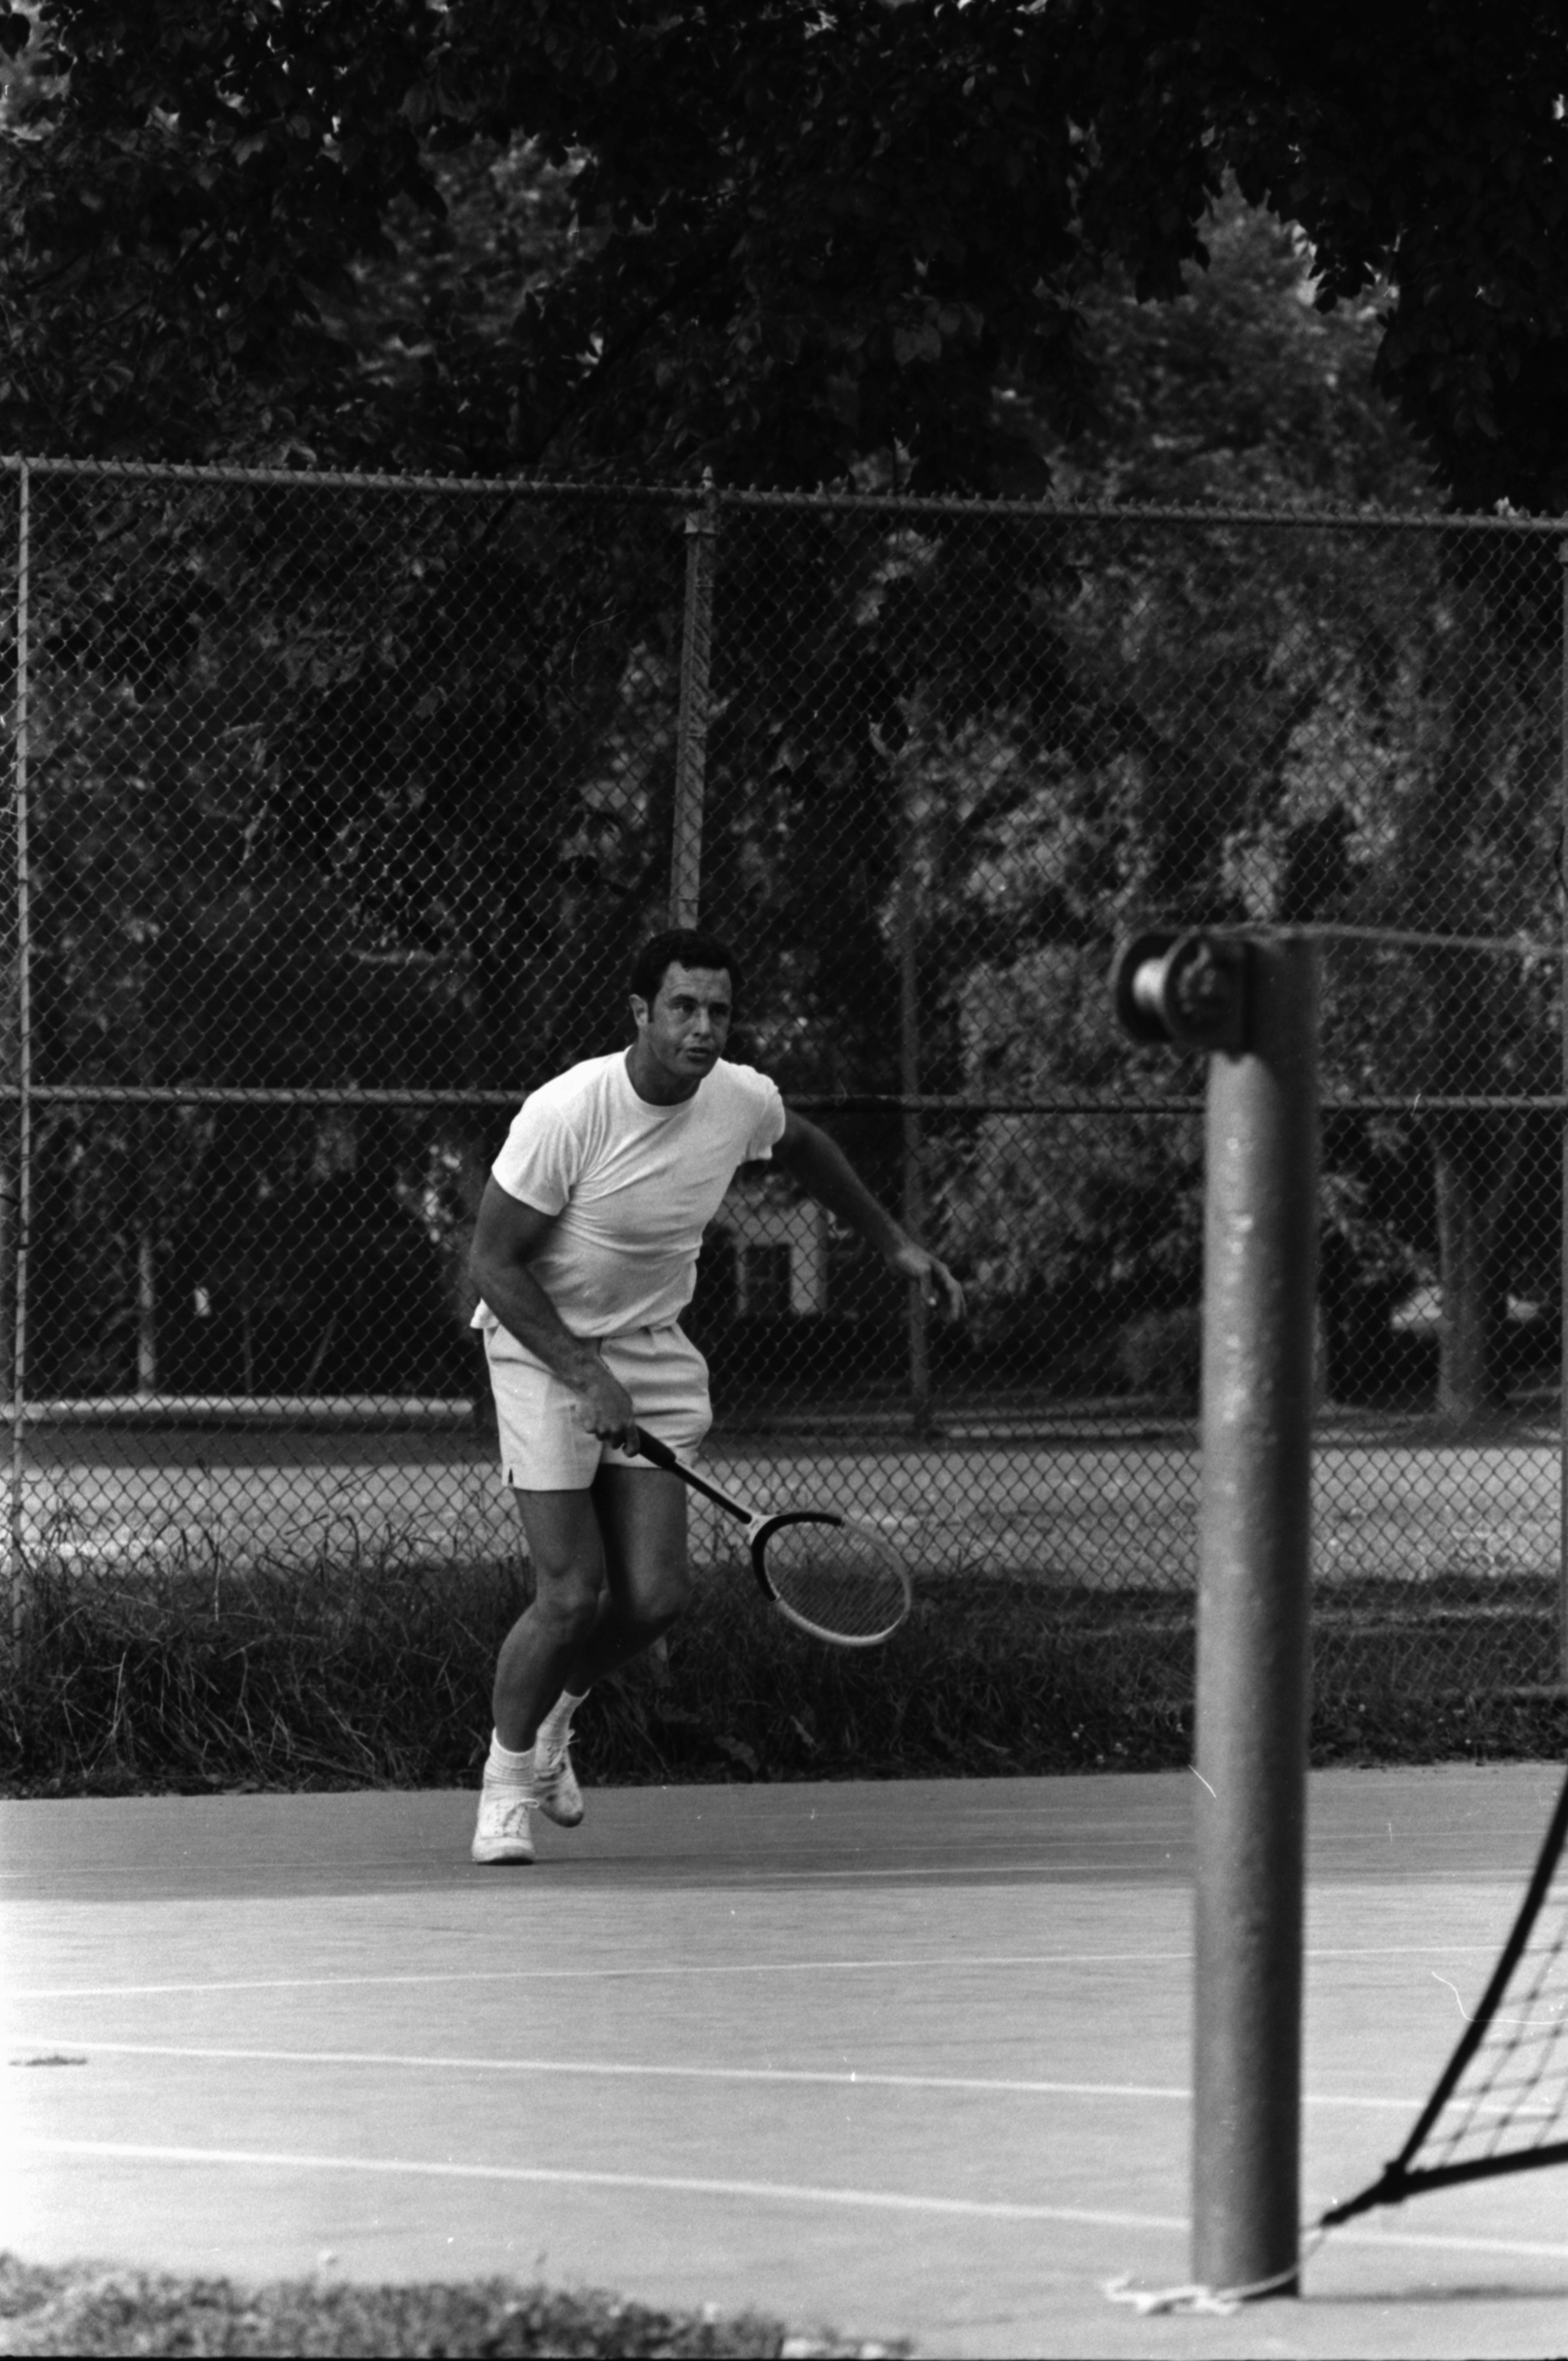 Ann Arbor City Tennis Champ, July 1969 image